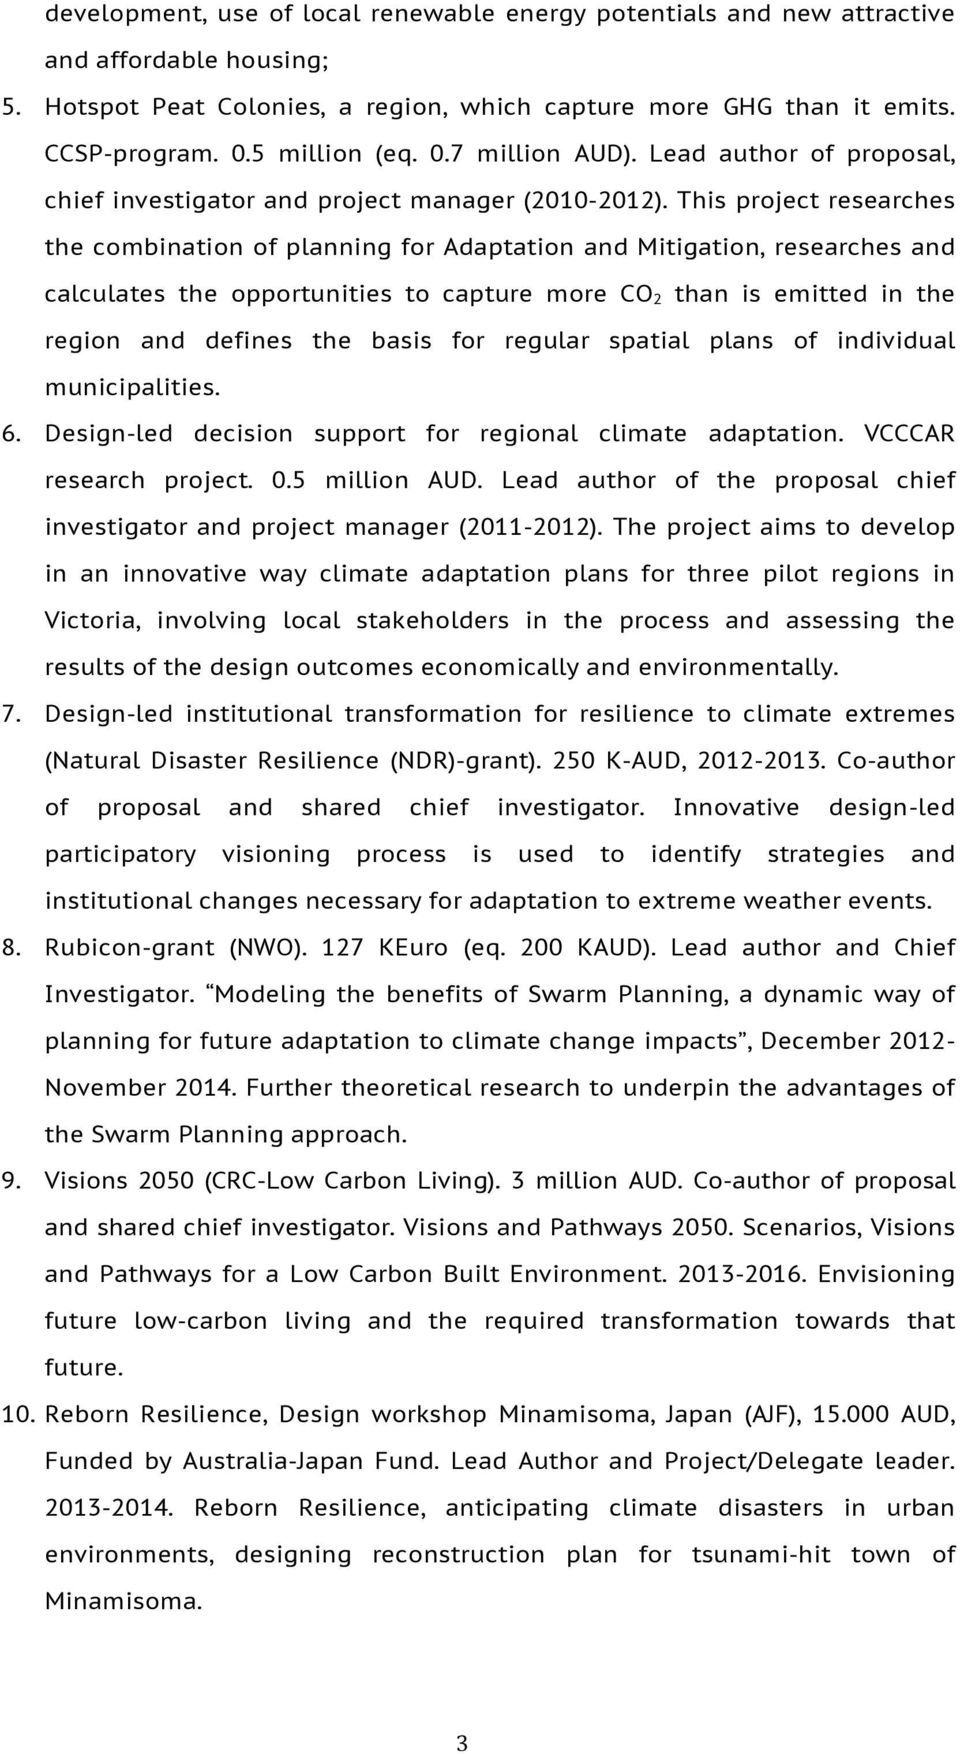 This project researches the combination of planning for Adaptation and Mitigation, researches and calculates the opportunities to capture more CO 2 than is emitted in the region and defines the basis